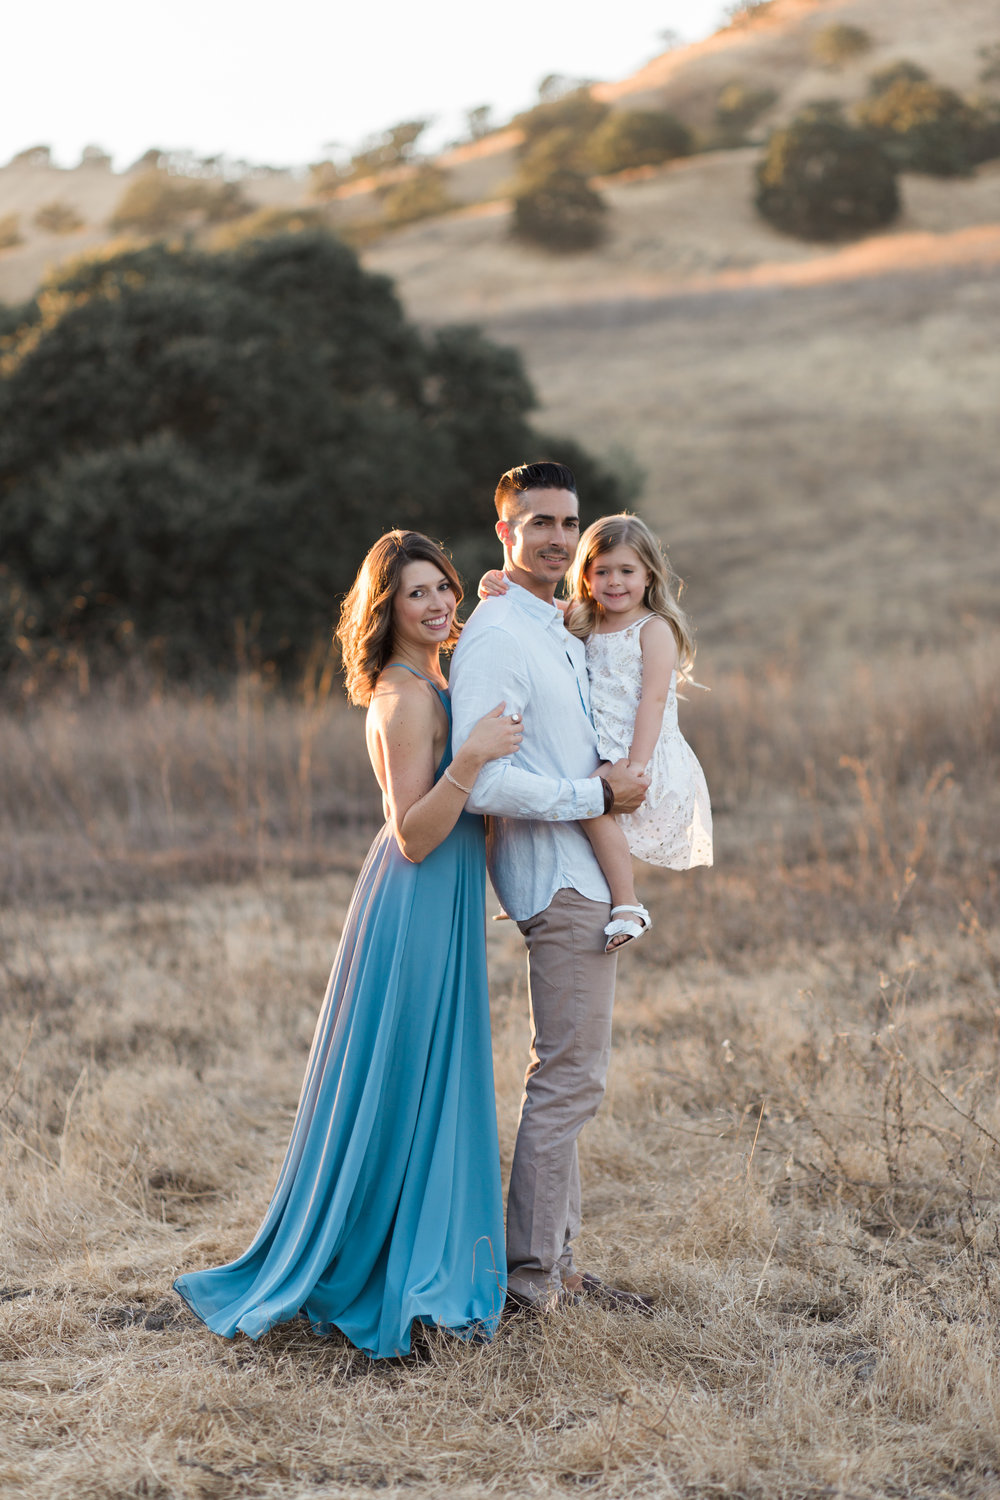 LawsonFamily2017-26.jpg